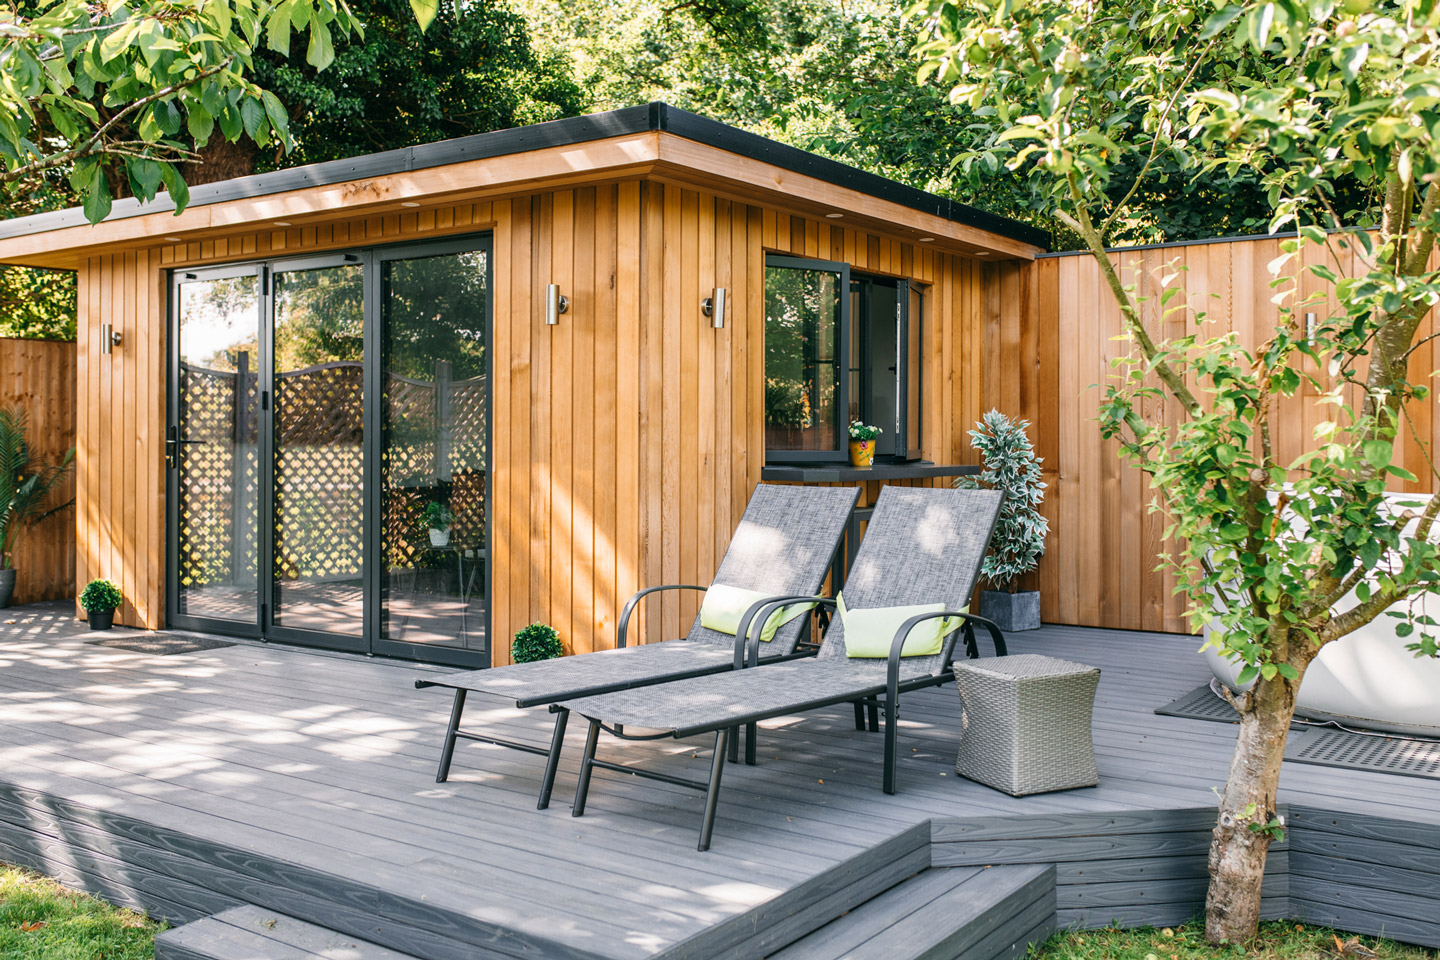 Garden Room surrounded by trees & seats.